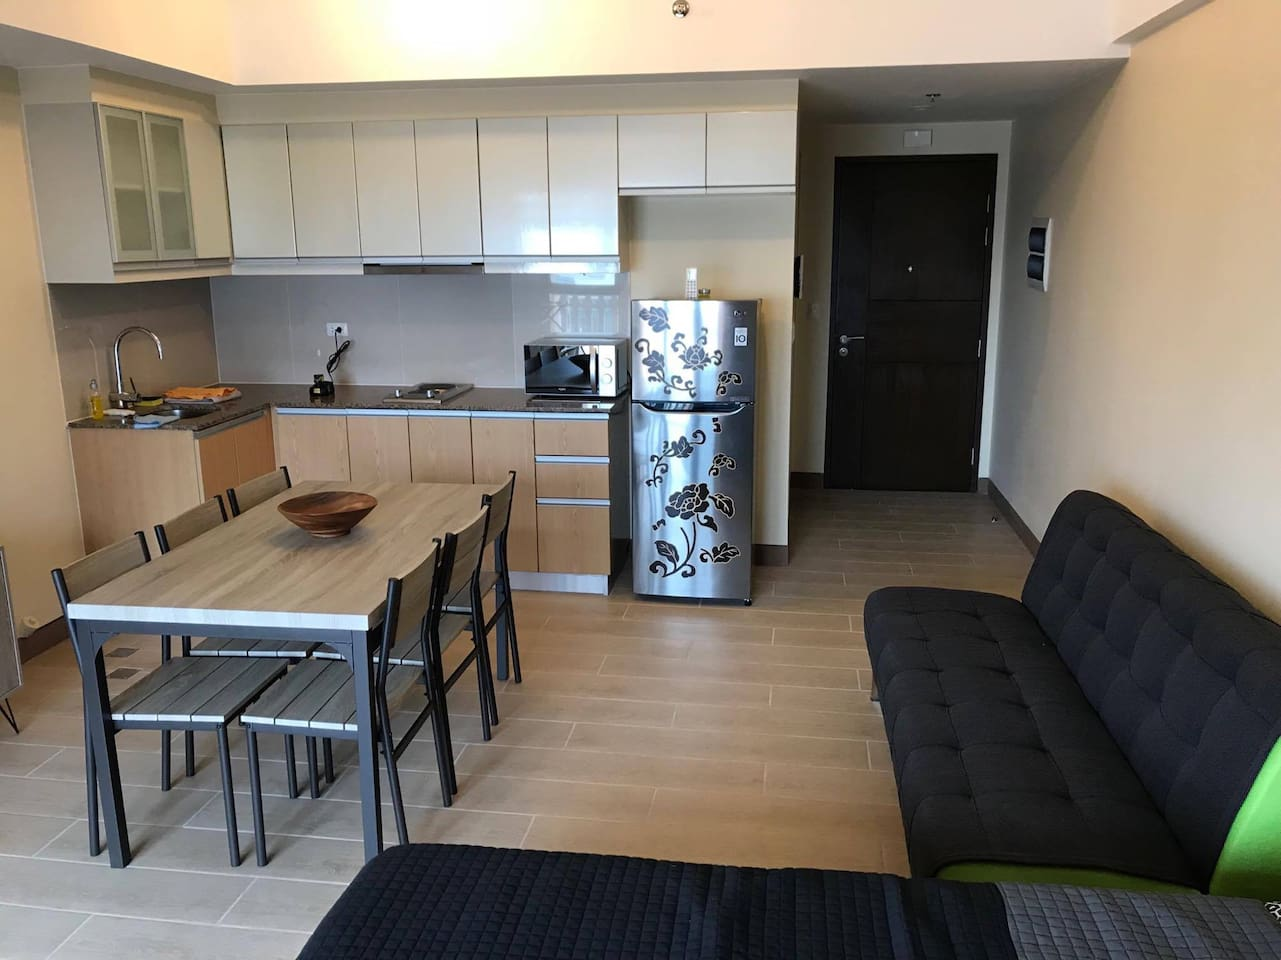 Small kitchen with micro-wave, refrigerator, etc...